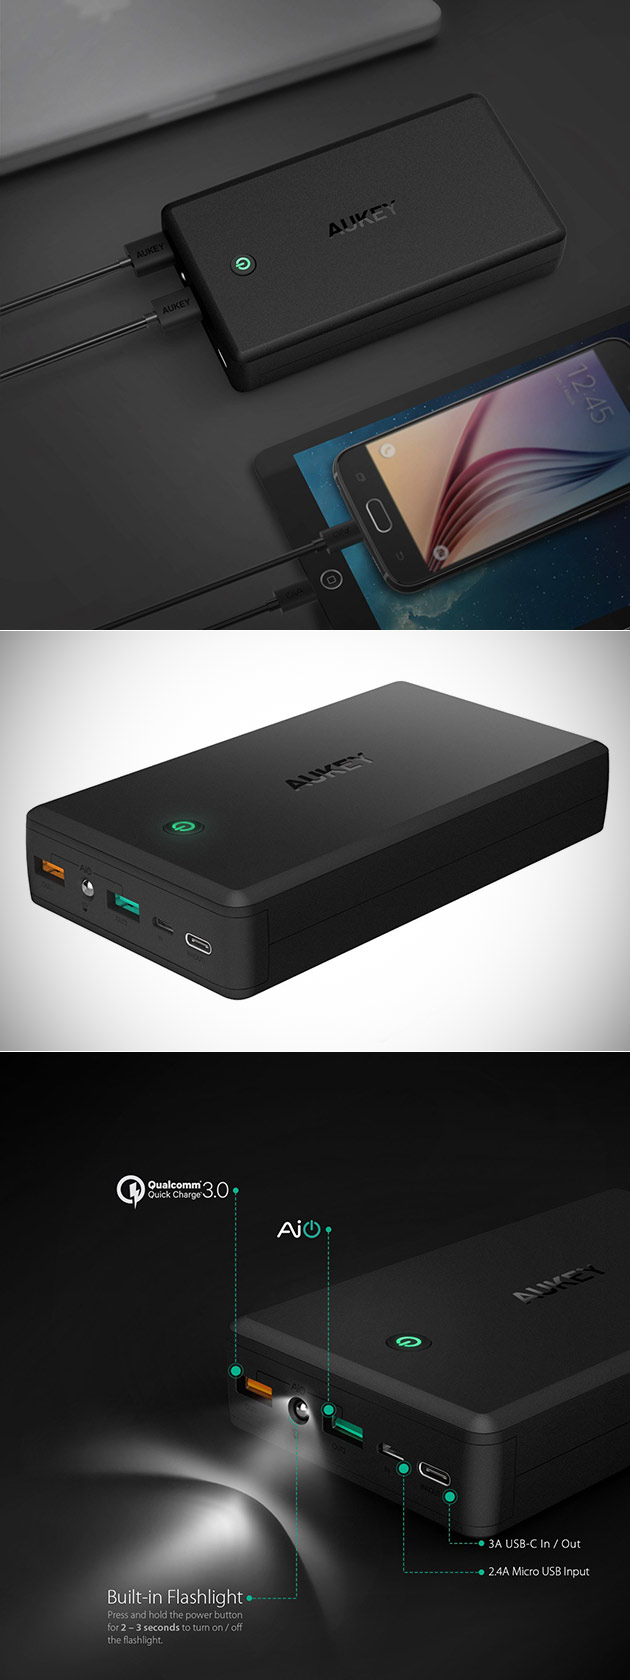 AUKEY 30,000mAh Portable Charger Has USB-C and microUSB for Nintendo